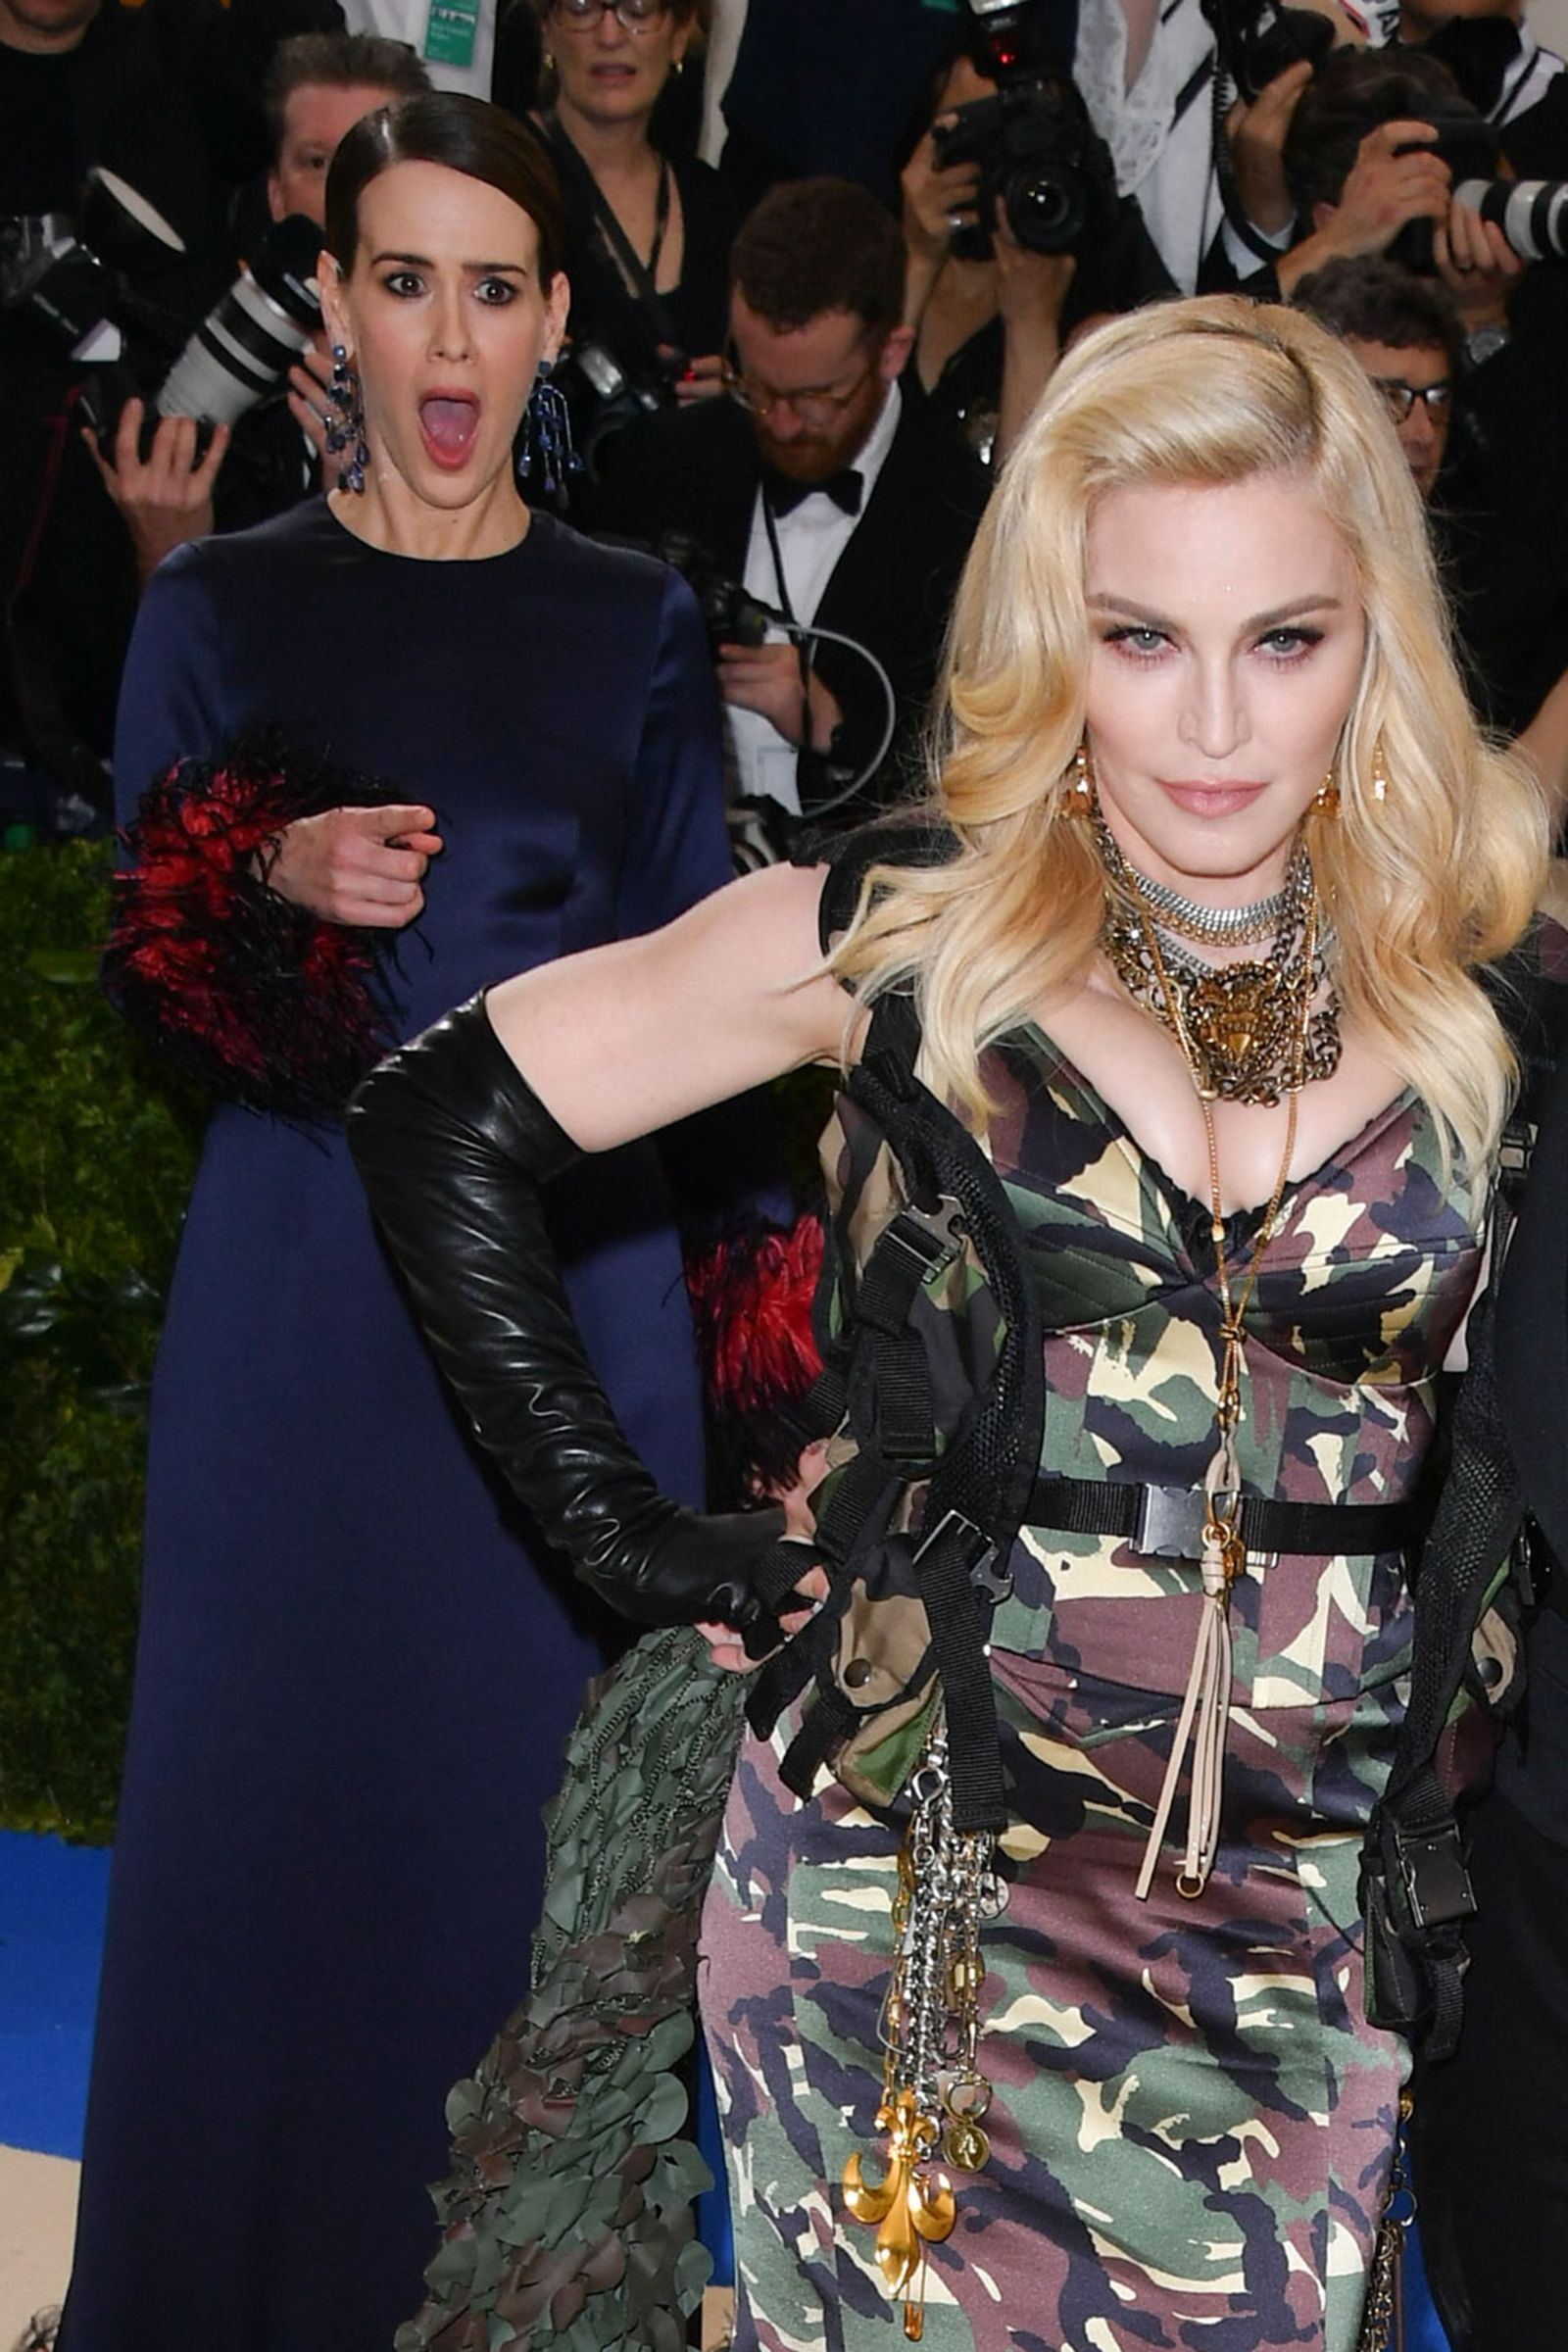 Sarah Paulson fangirls over Madonna on the red carpet - In Photos: The Best Candid Moments From The 2017 Met Gala - HarpersBAZAAR.com